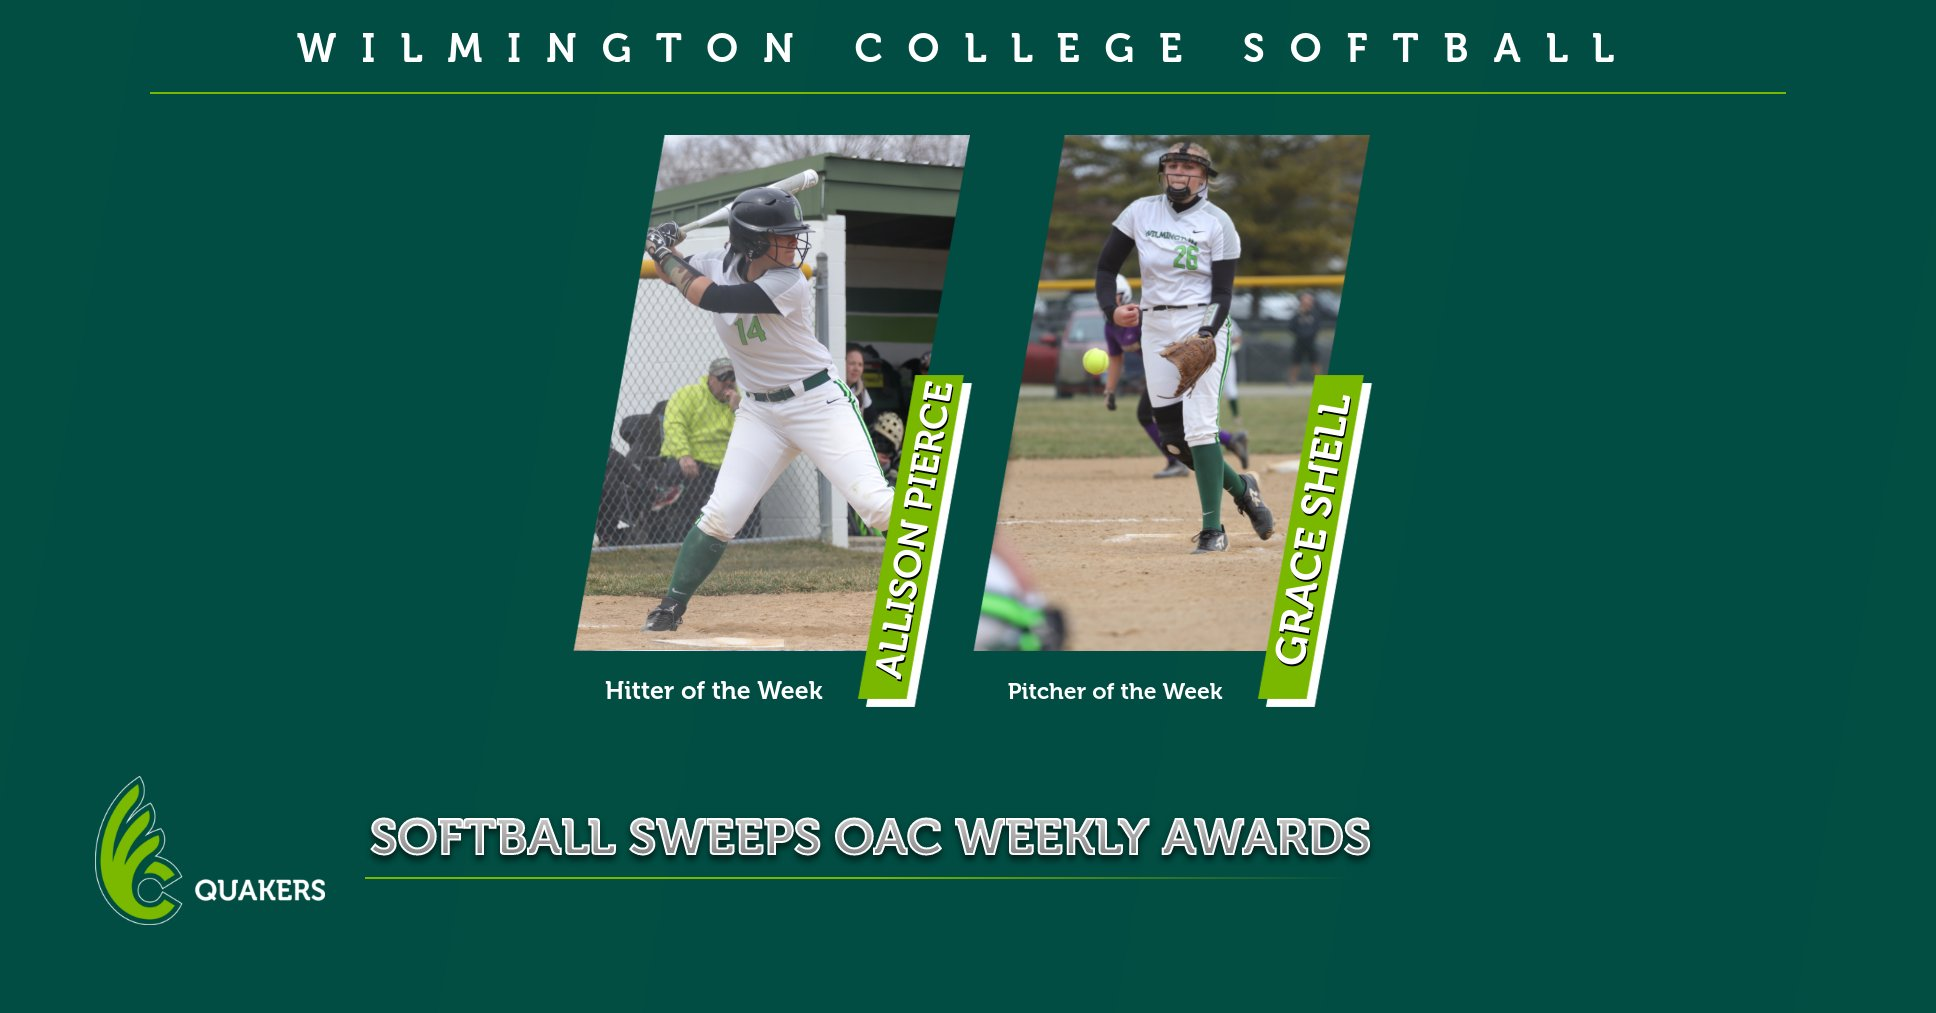 Softball Sweeps OAC Weekly Awards